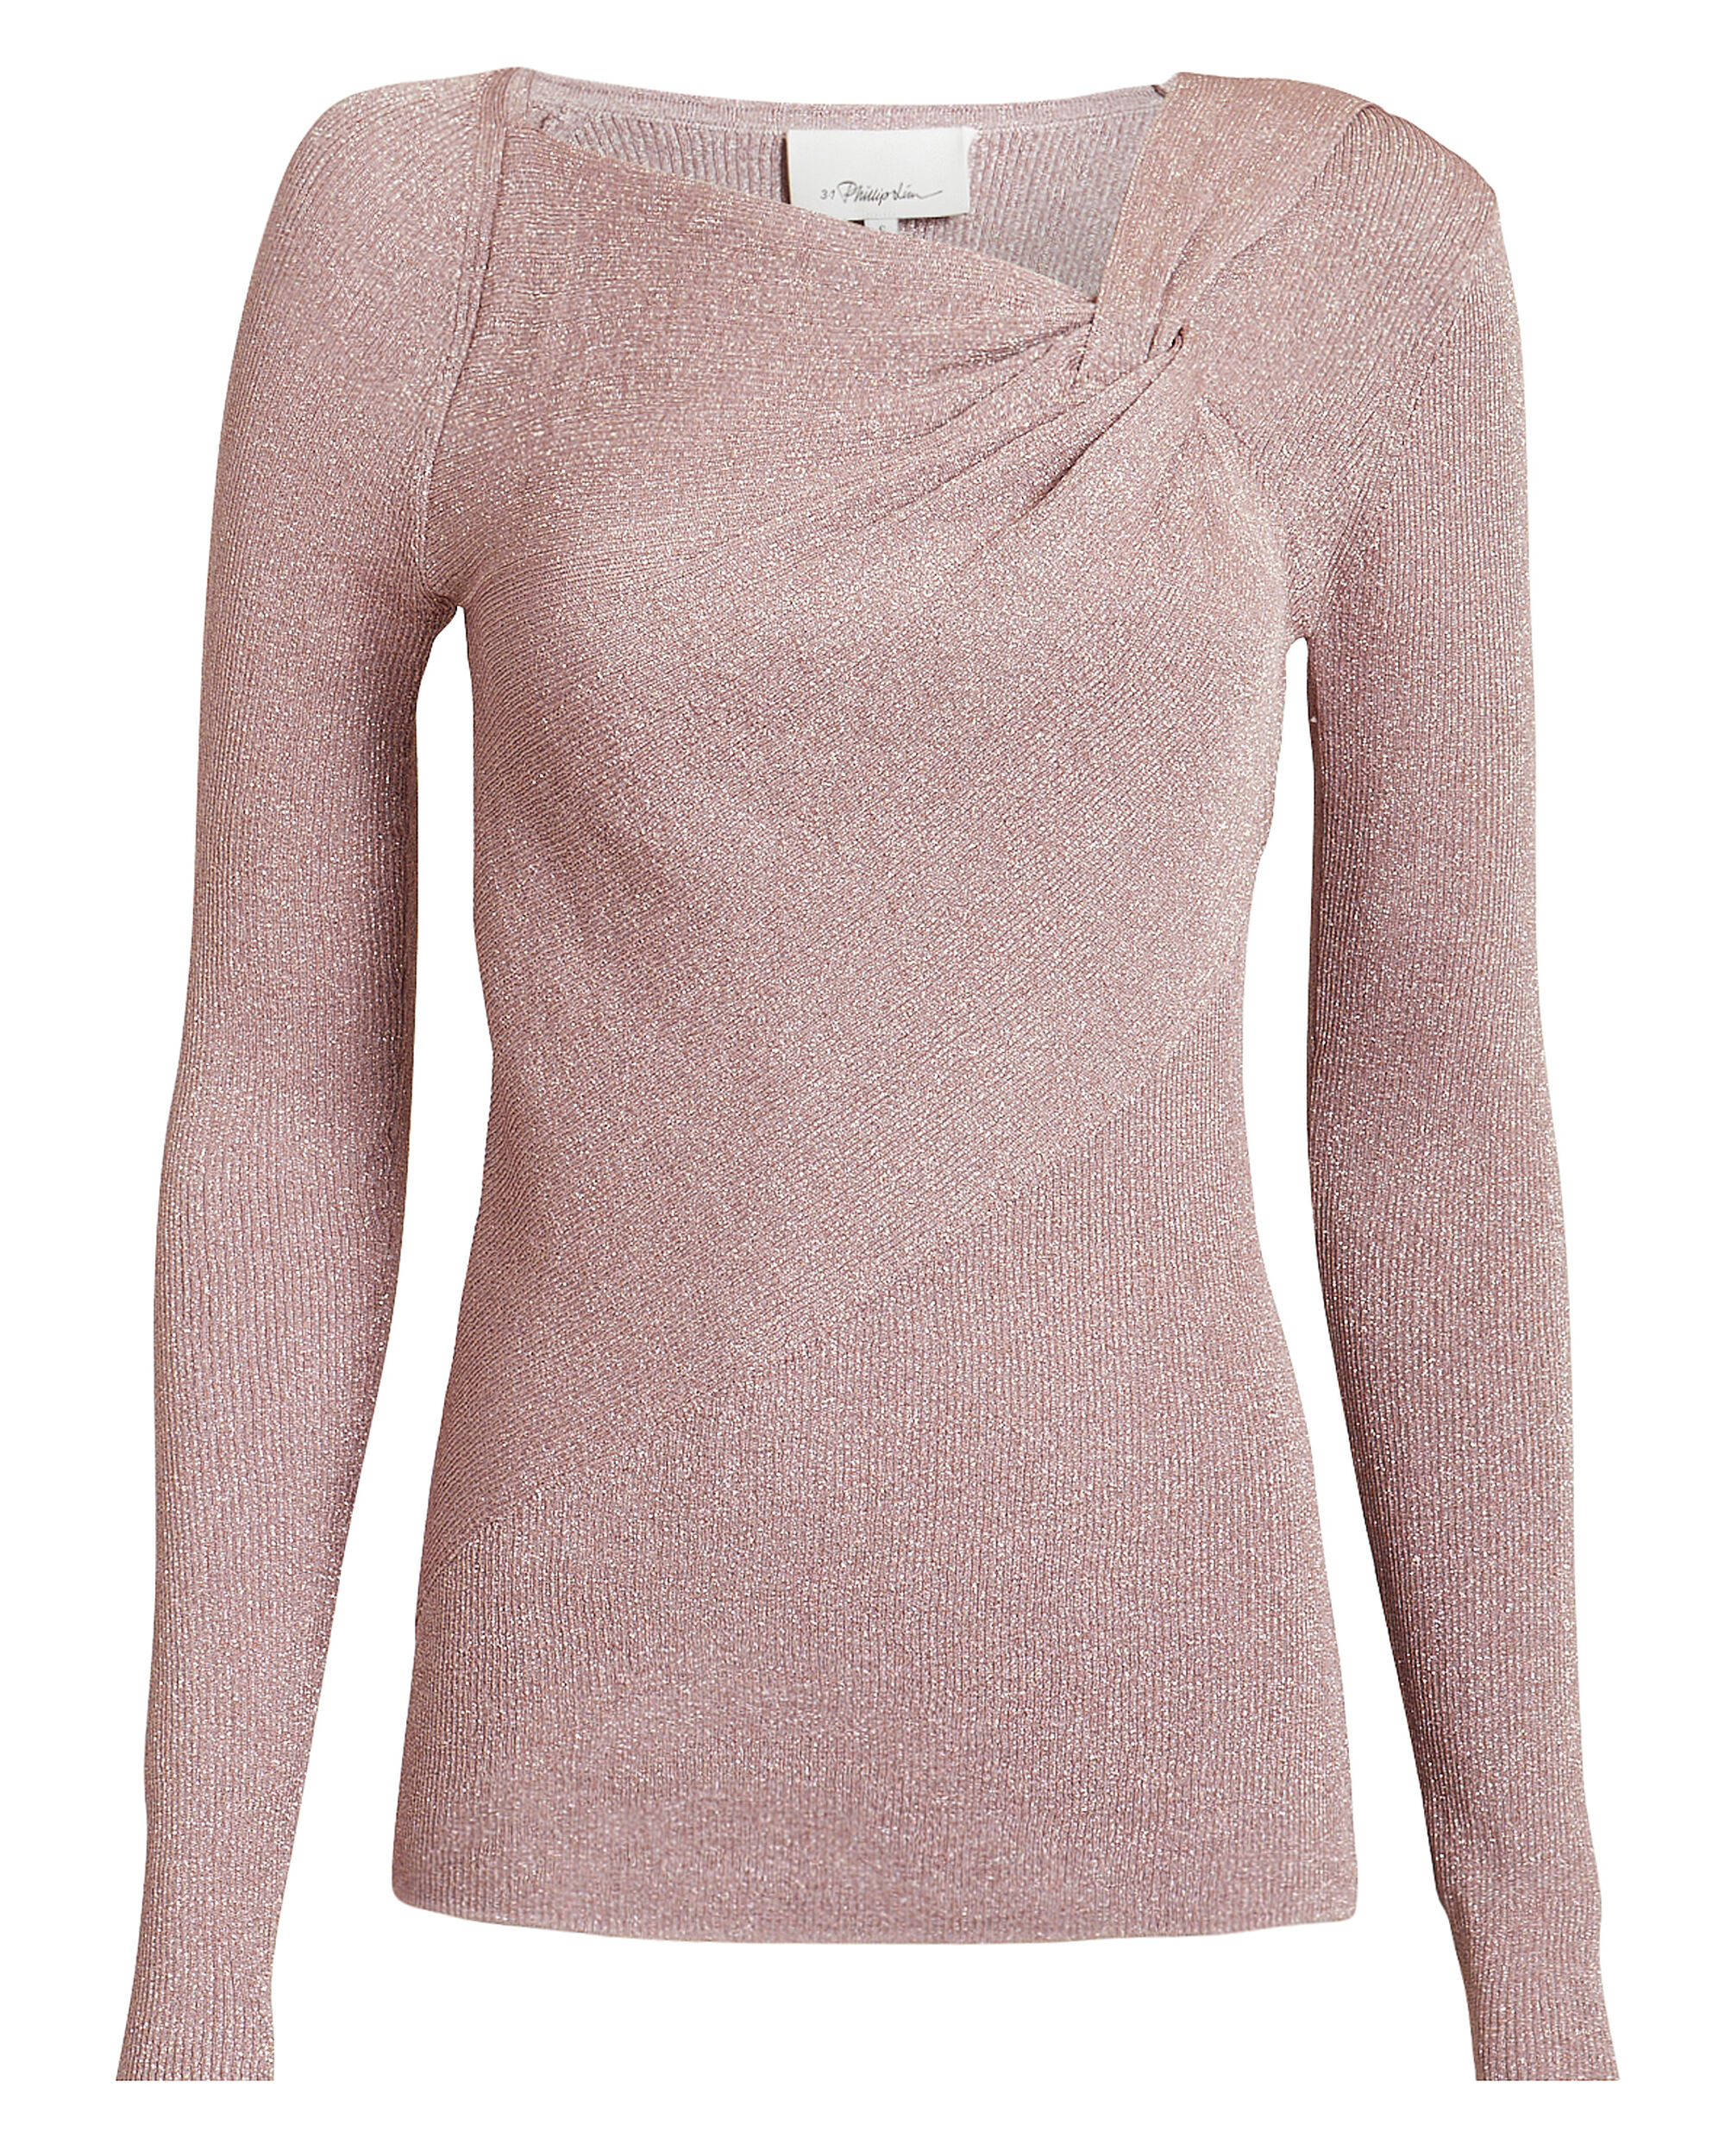 Lurex Twisted Pullover, BLUSH, hi-res